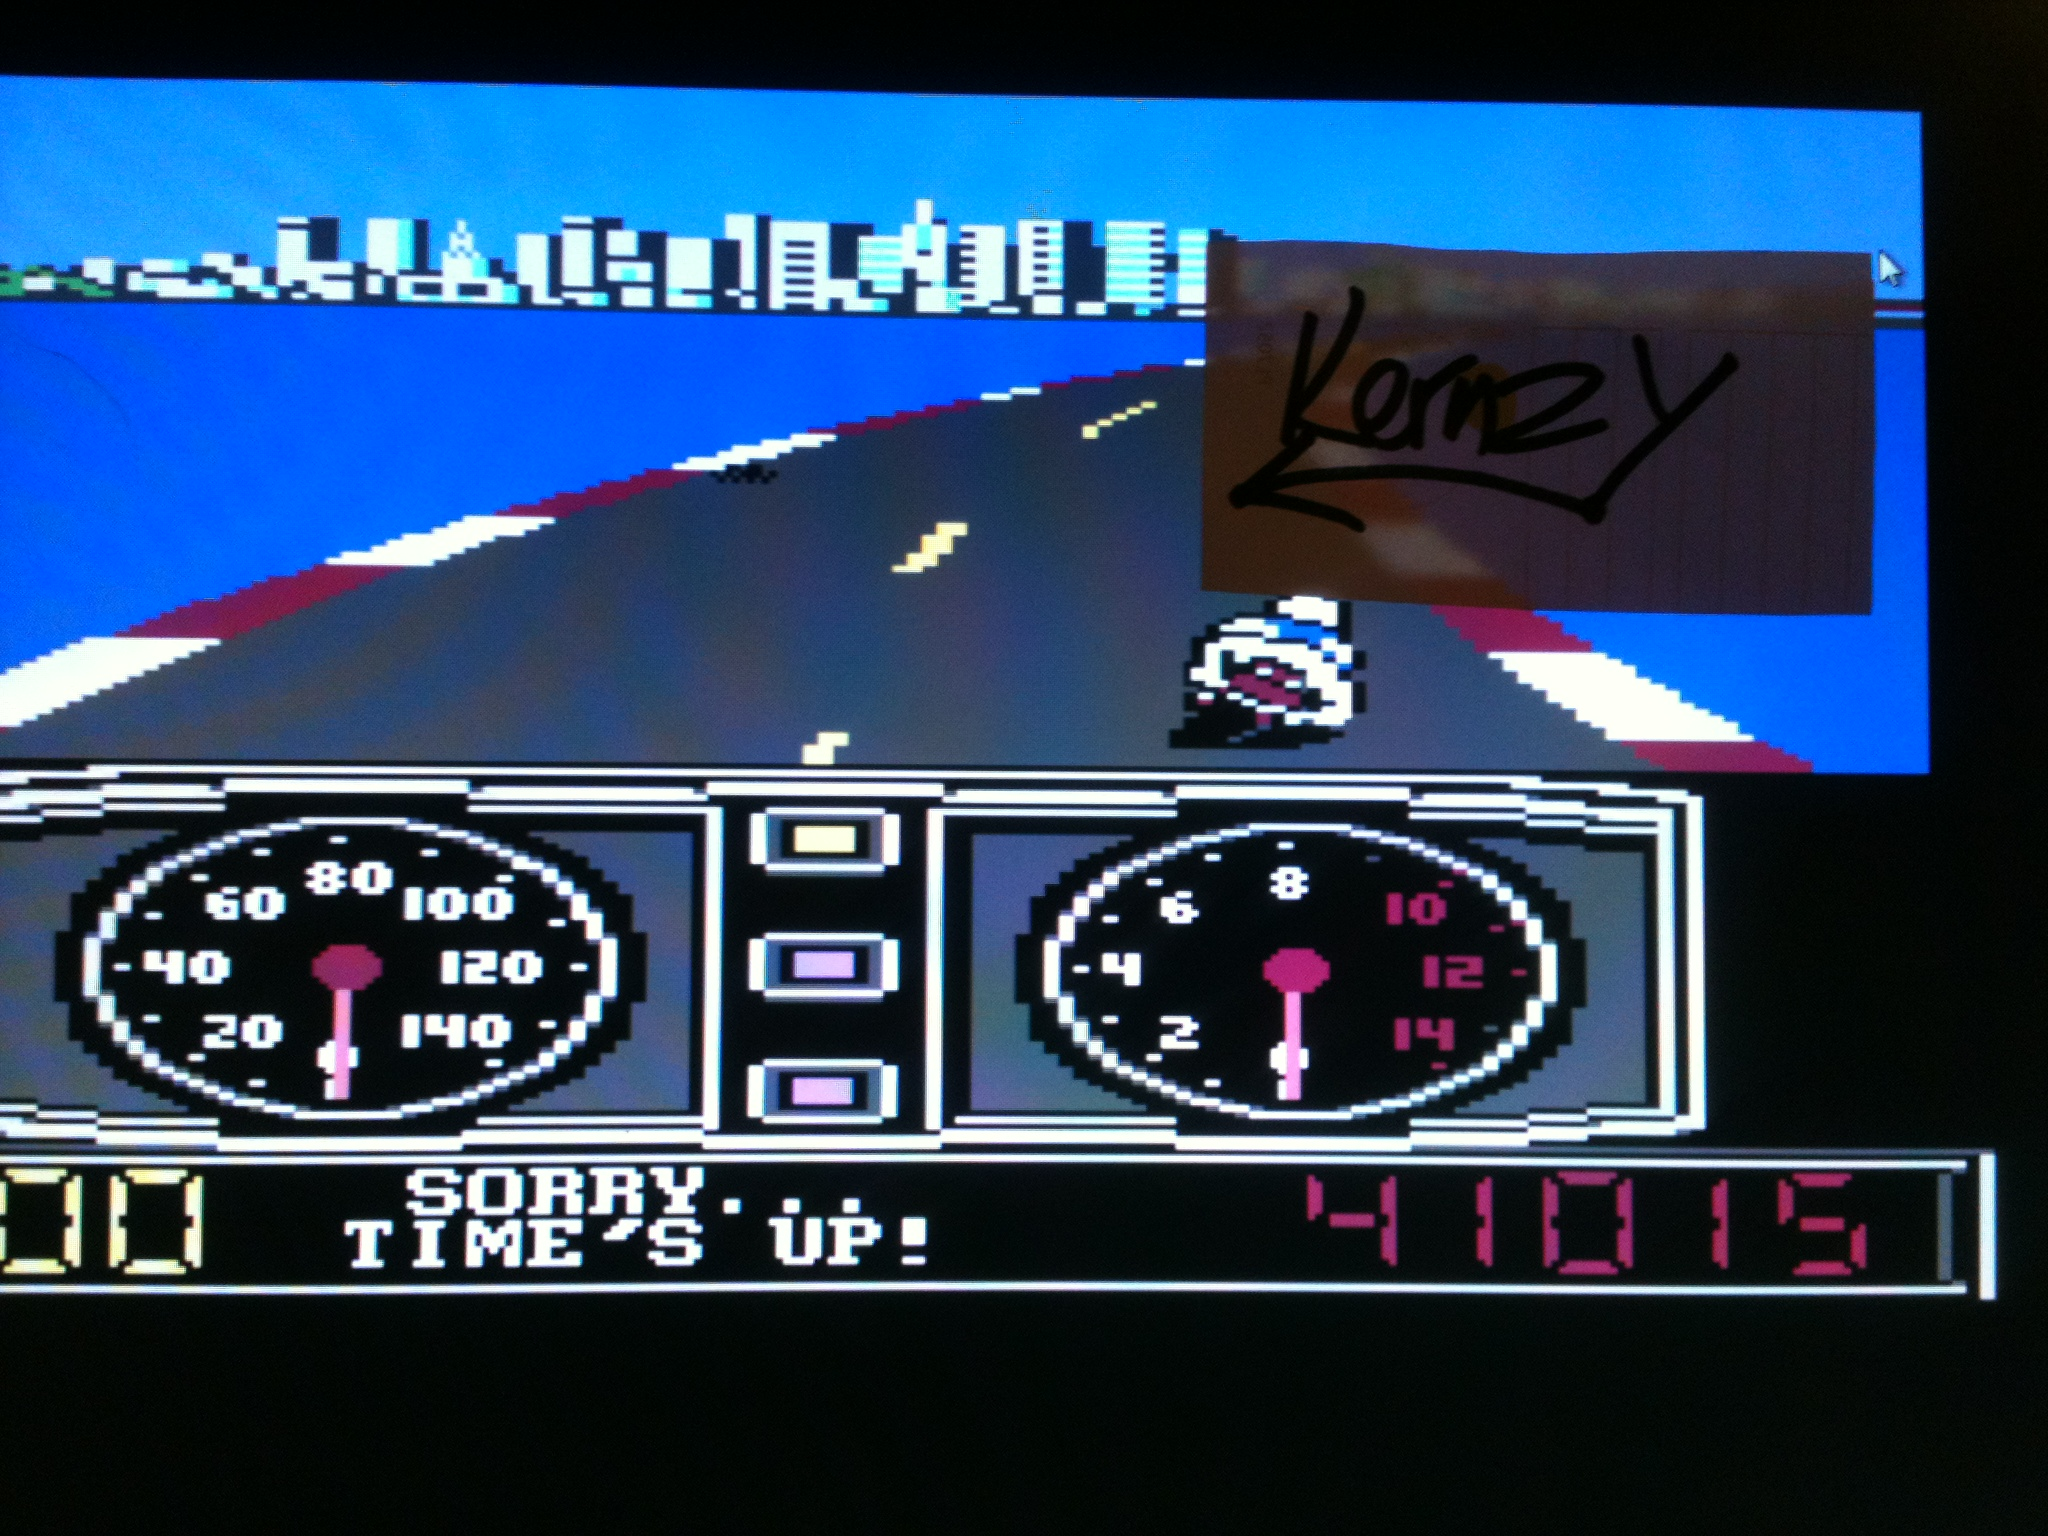 kernzy: Super Cycle (Commodore 64 Emulated) 41,015 points on 2015-05-08 19:42:57